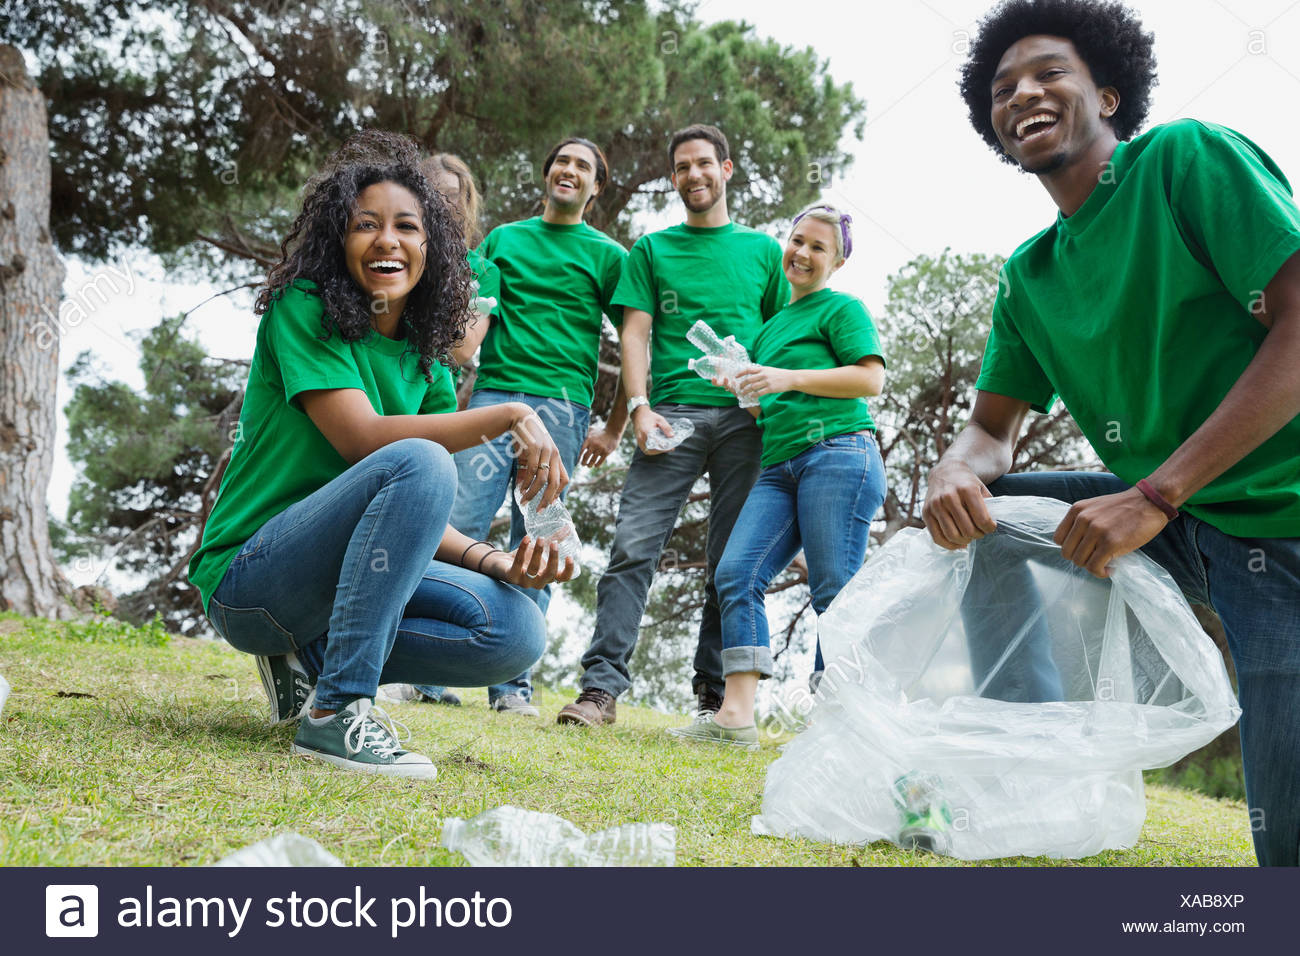 Happy environmentalists collecting empty bottles in plastic bags at park - Stock Image